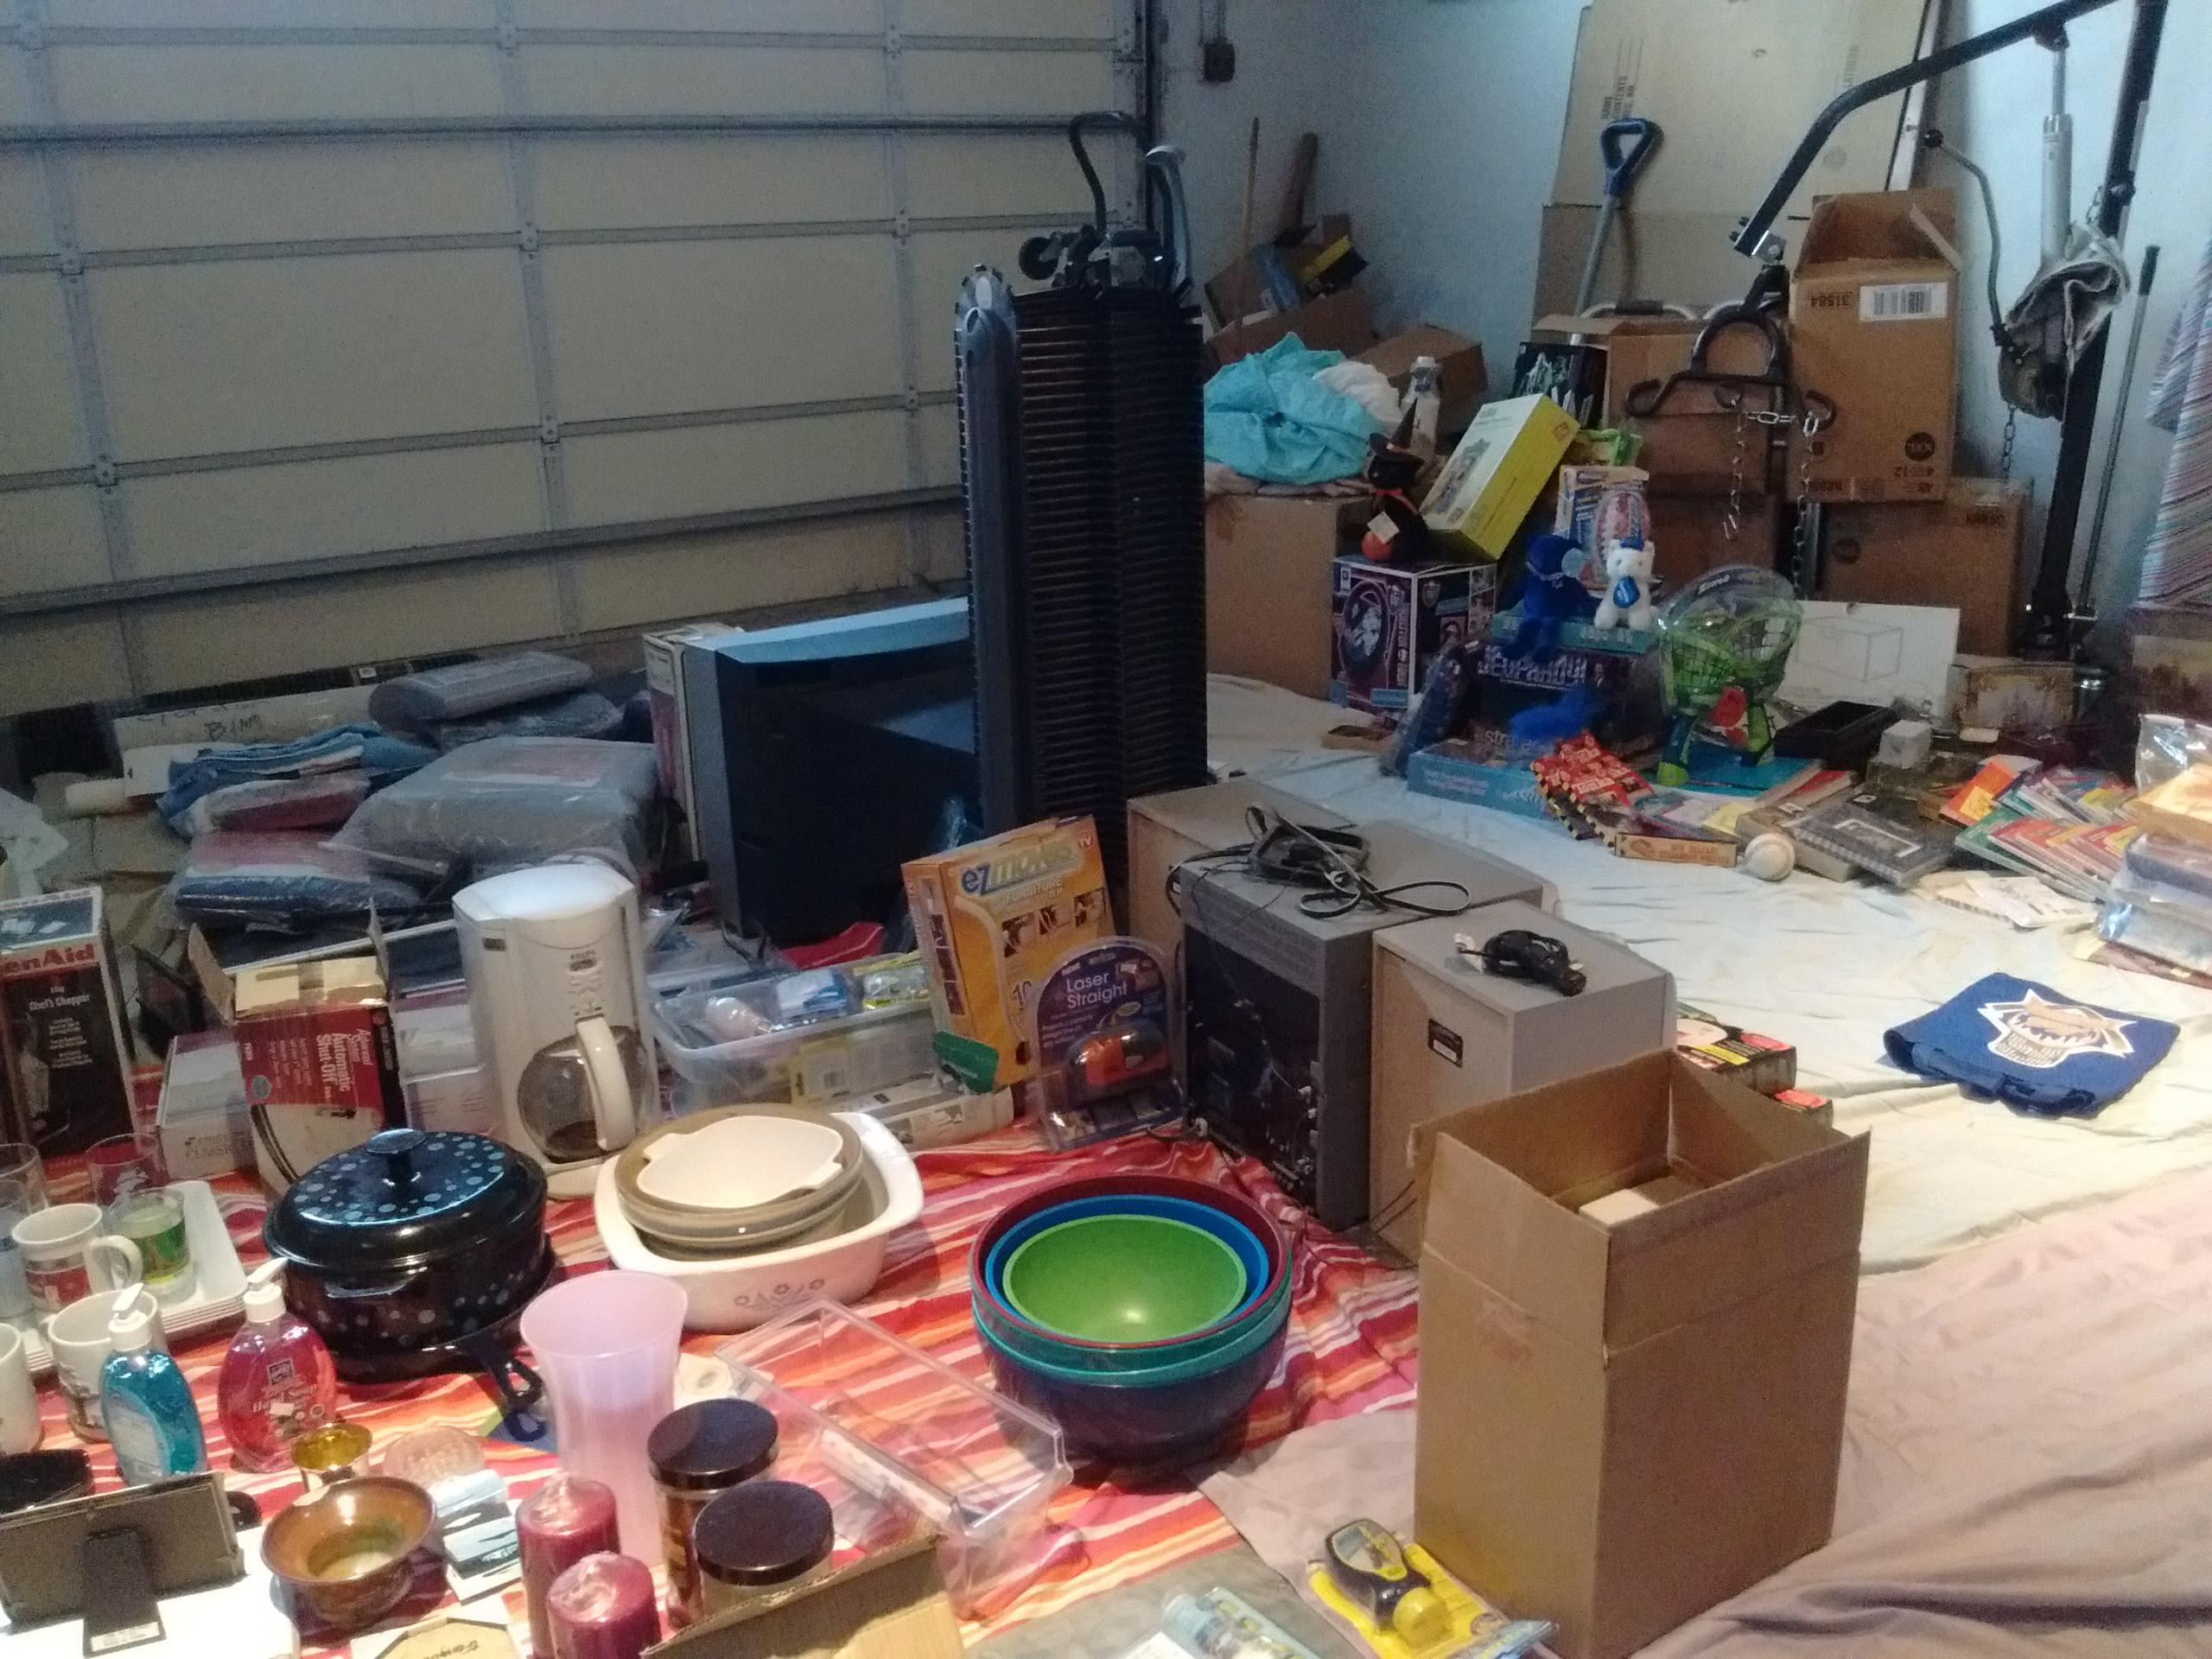 Garage//Estate Sale!! Household/Medical/Furniture/Office/Kids/Kitchen/Storage/Curio